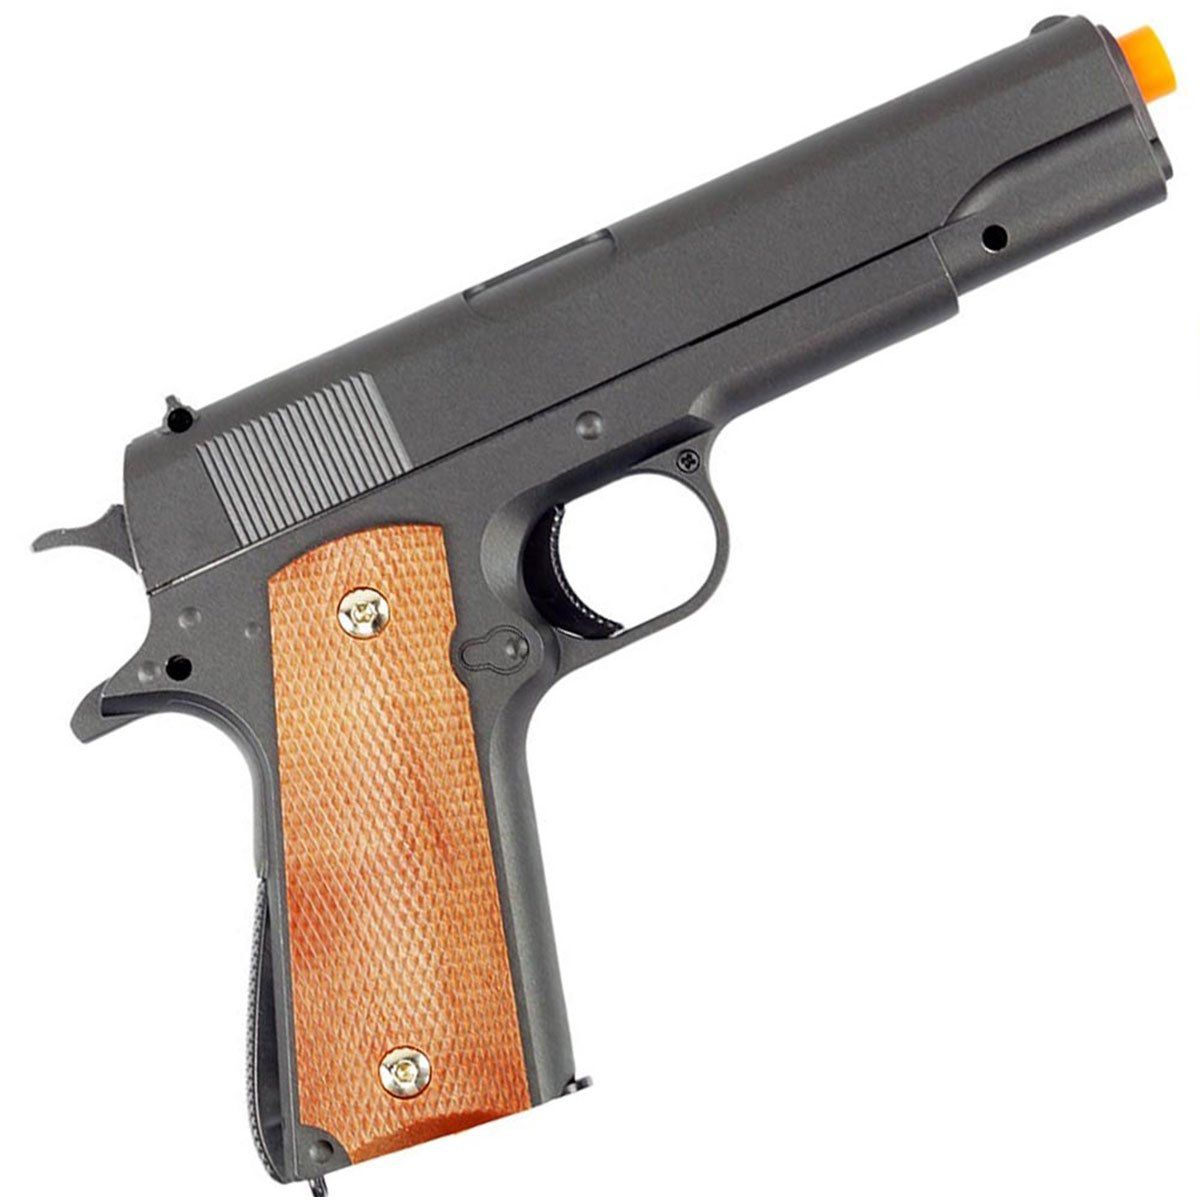 Pist Airsoft Galaxy G13 Colt 1911 Full Metal Spring + Coldre